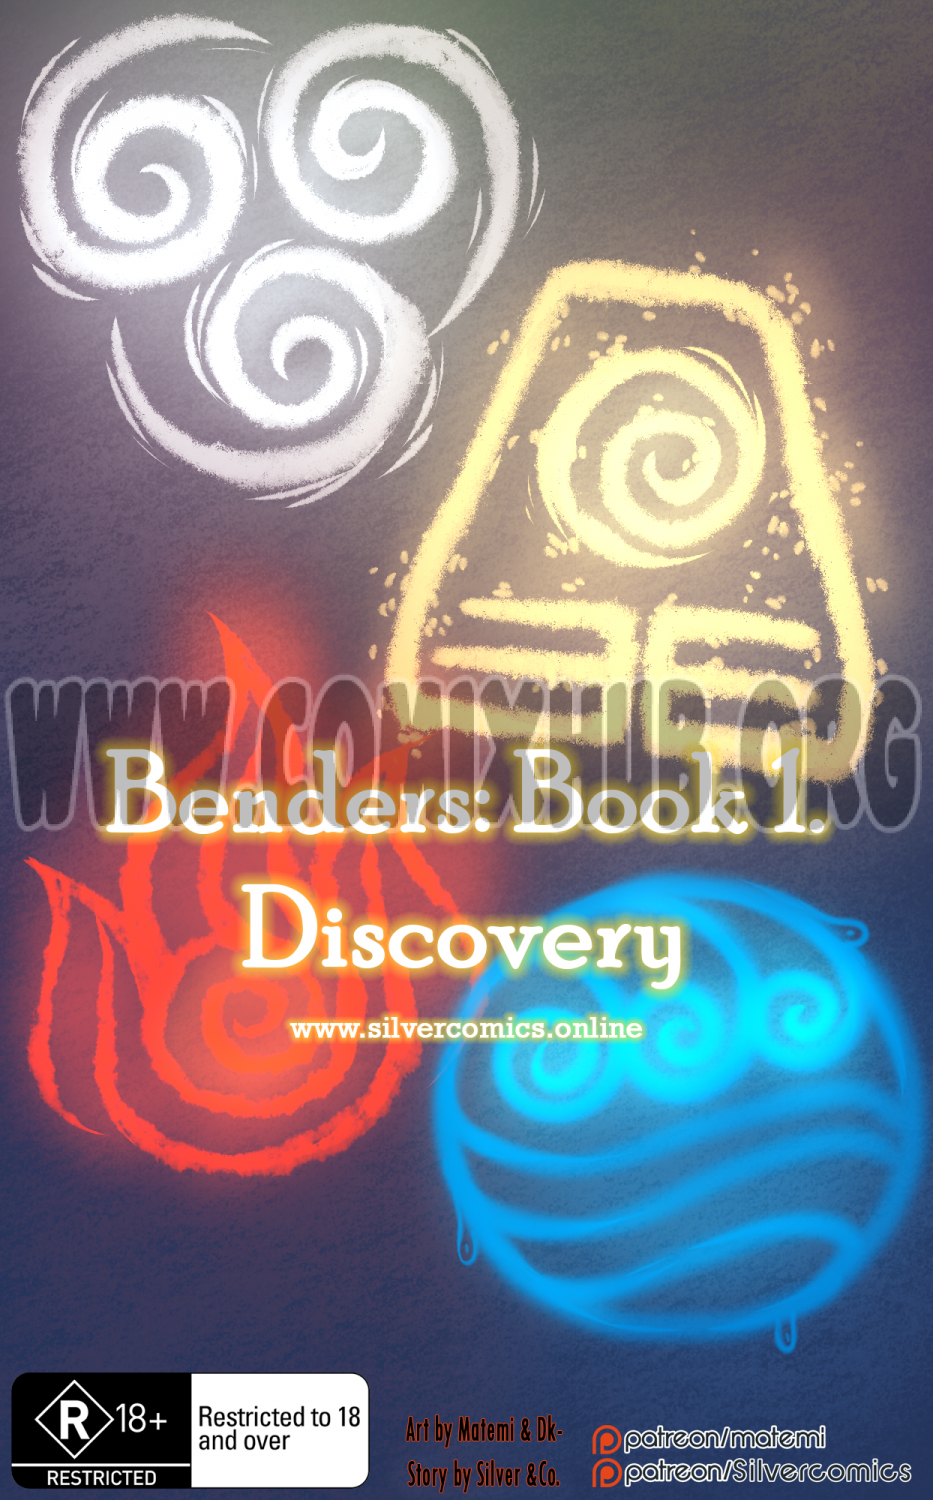 Benders: Book 1. Discovery Furry, Fantasy